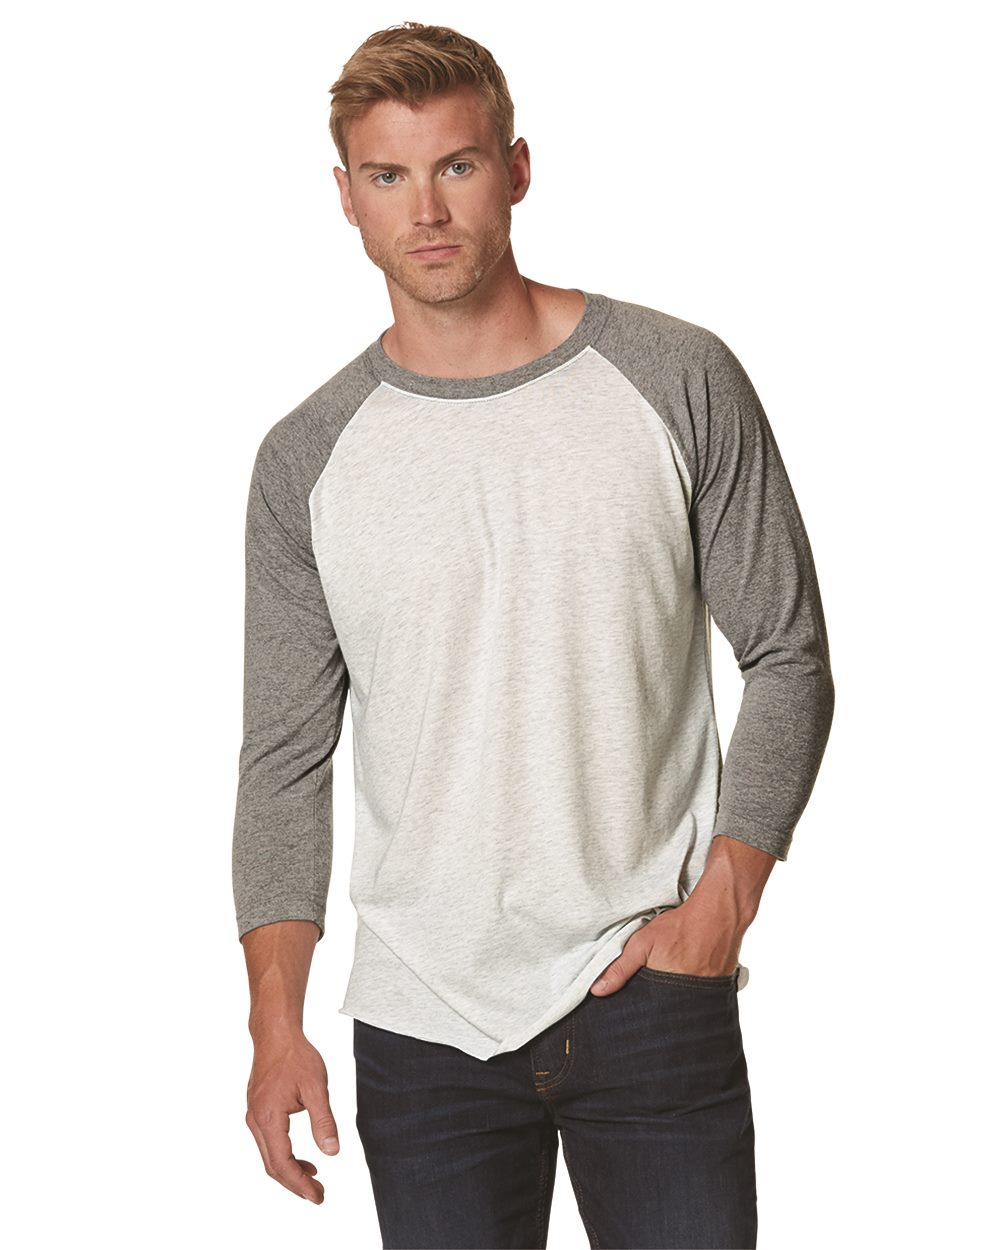 Next Level Tri-blend Baseball Raglan 6051